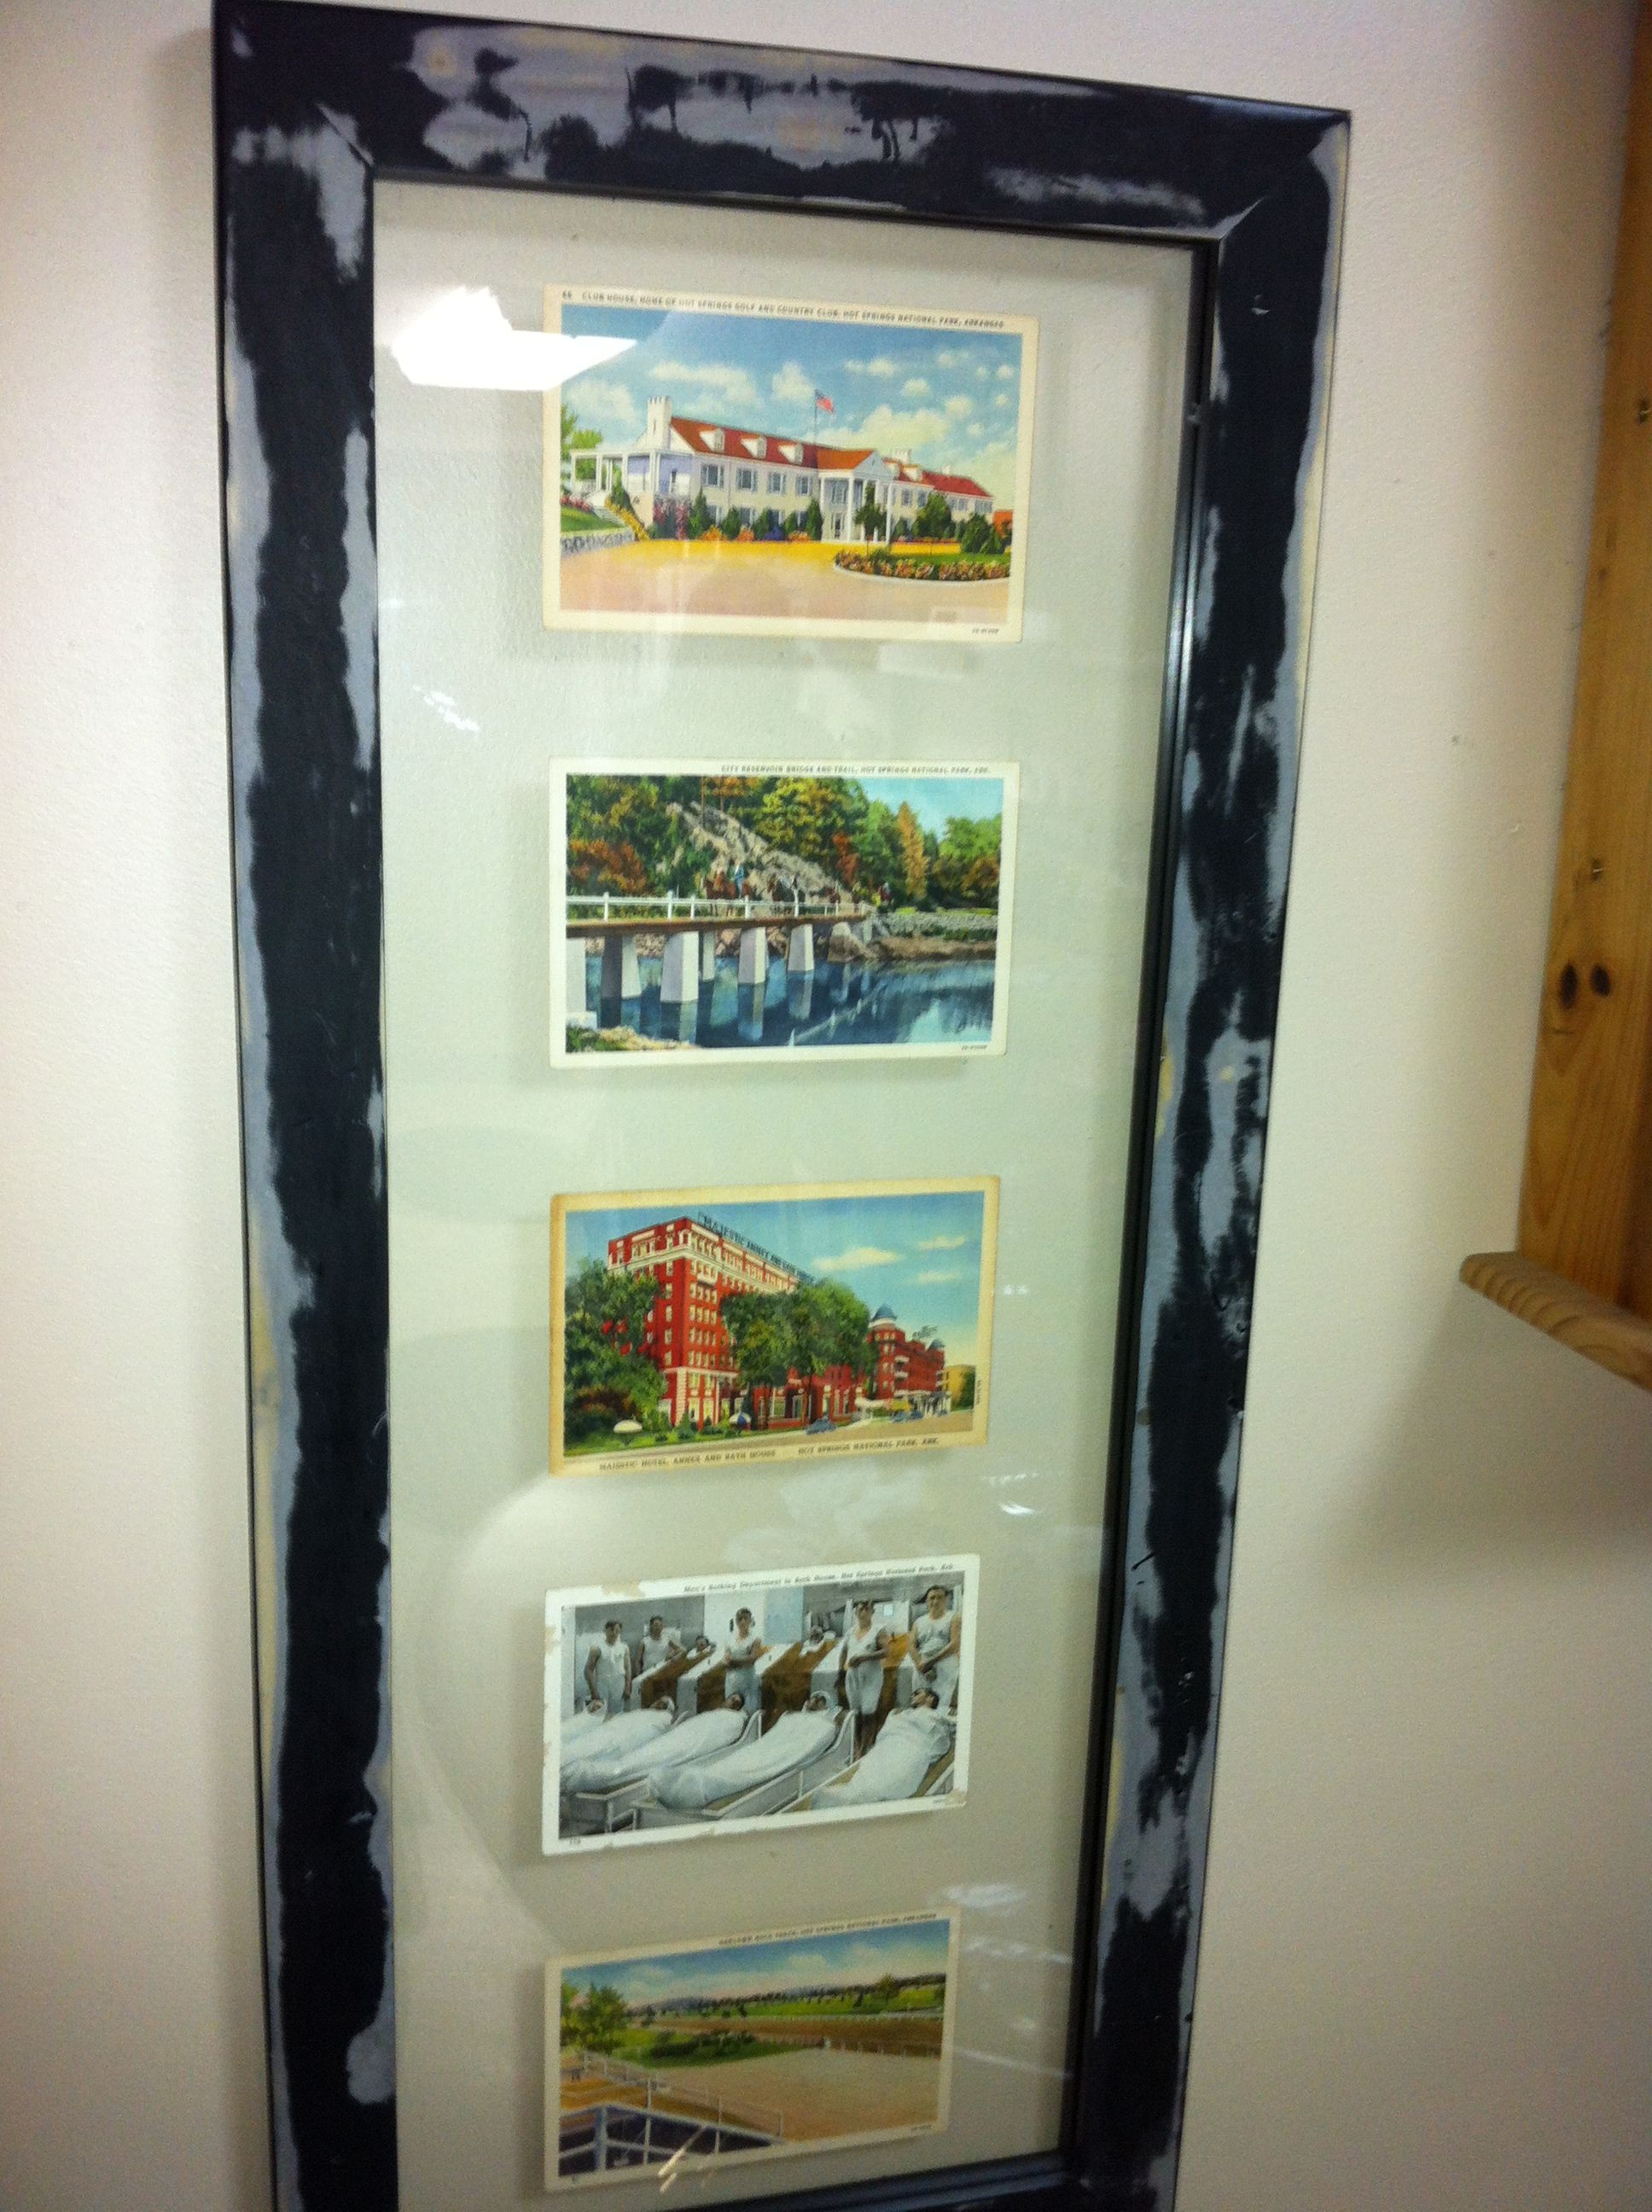 1930 40s hot springs arkansas postcards floated in a double glass frame found - Double Glass Frame